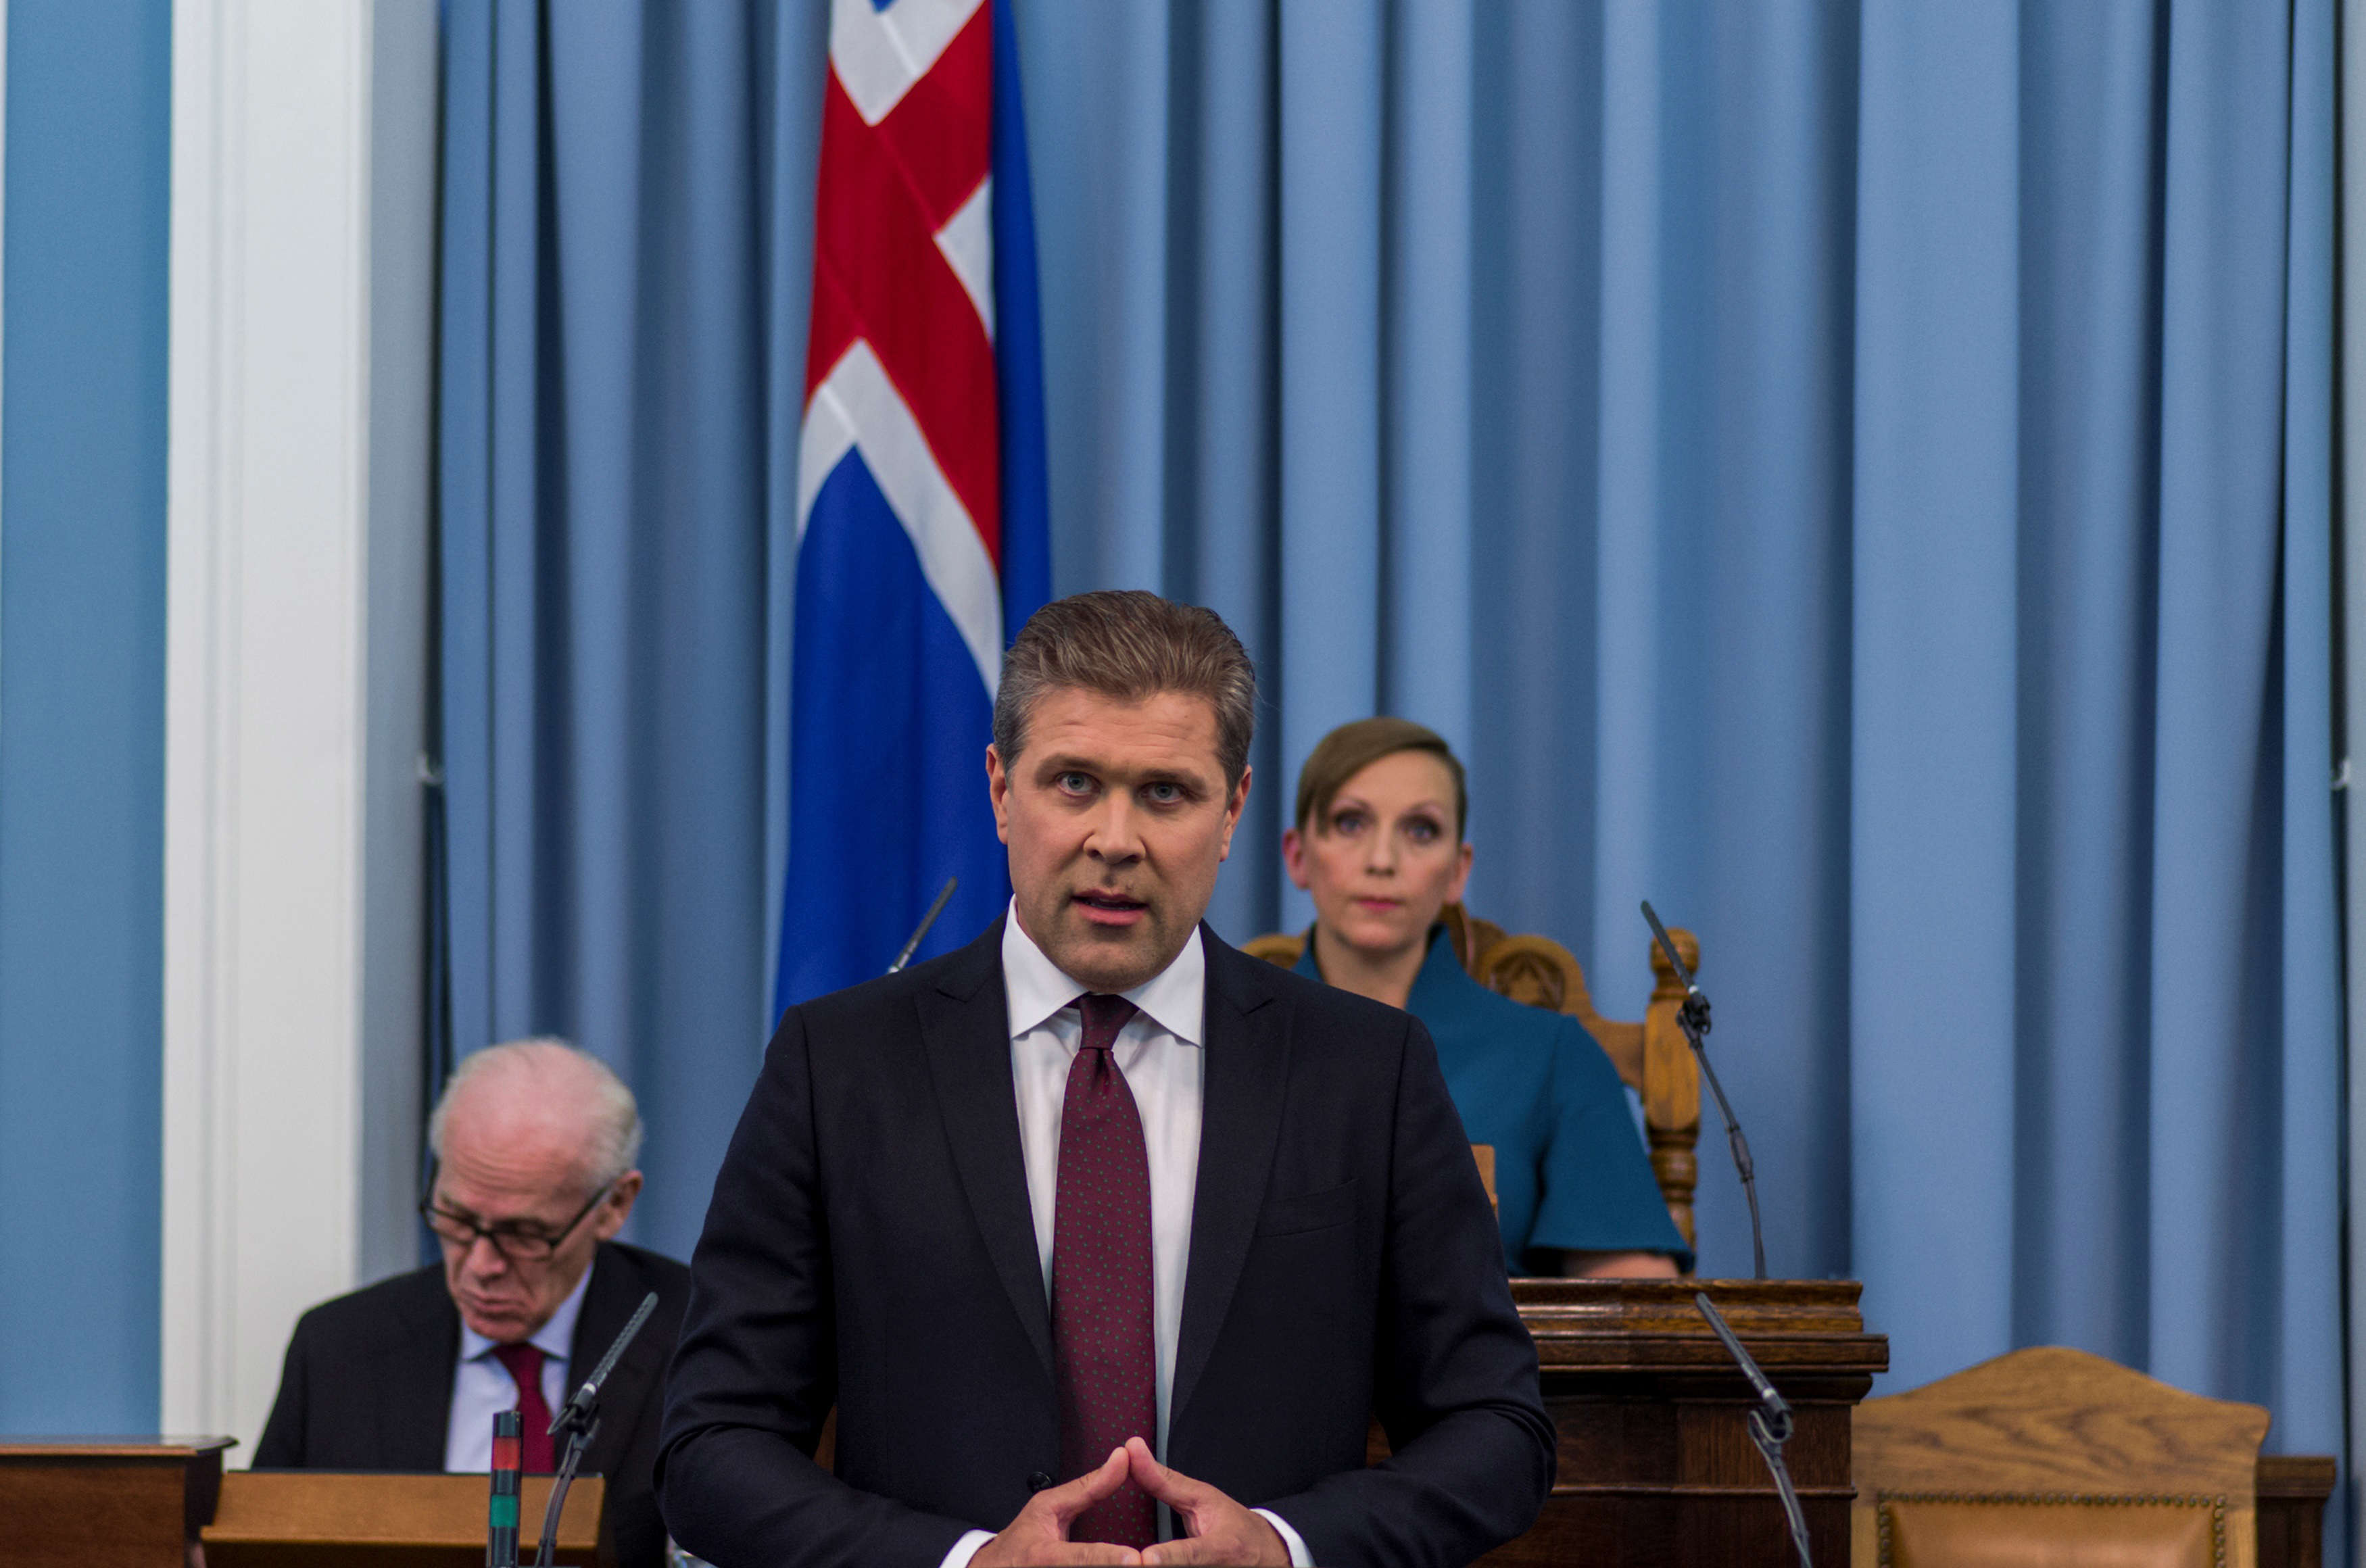 Slide 33 of 35: Prime Minister Bjarni Benediktsson speaks in Parliament in Reykjavik, Iceland, September 13, 2017. REUTERS/Geirix